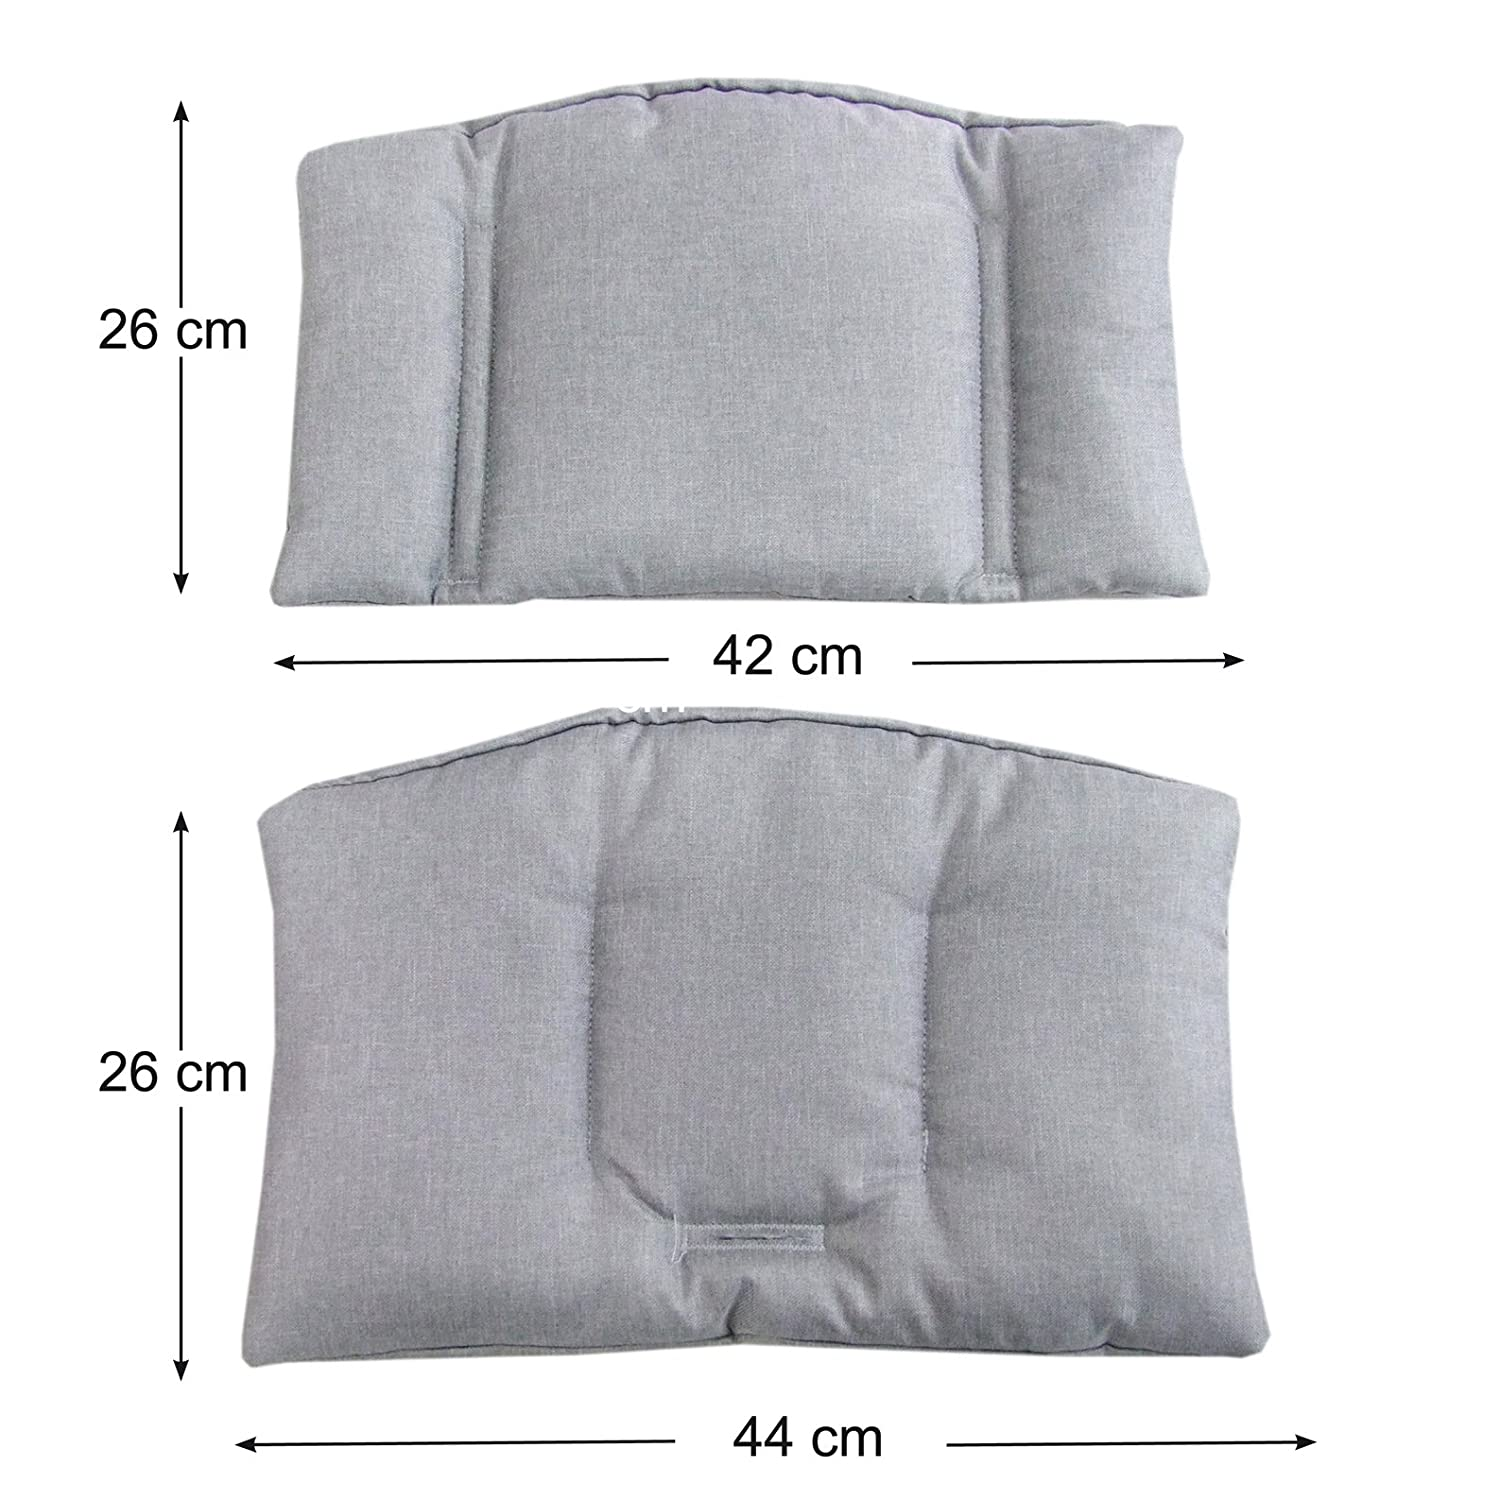 14/Colours heather 2/Pieces Seat Cushion Cushion Cover dark grey Bambini World Seat Cushion Set for Stokke Tripp Trapp Highchair